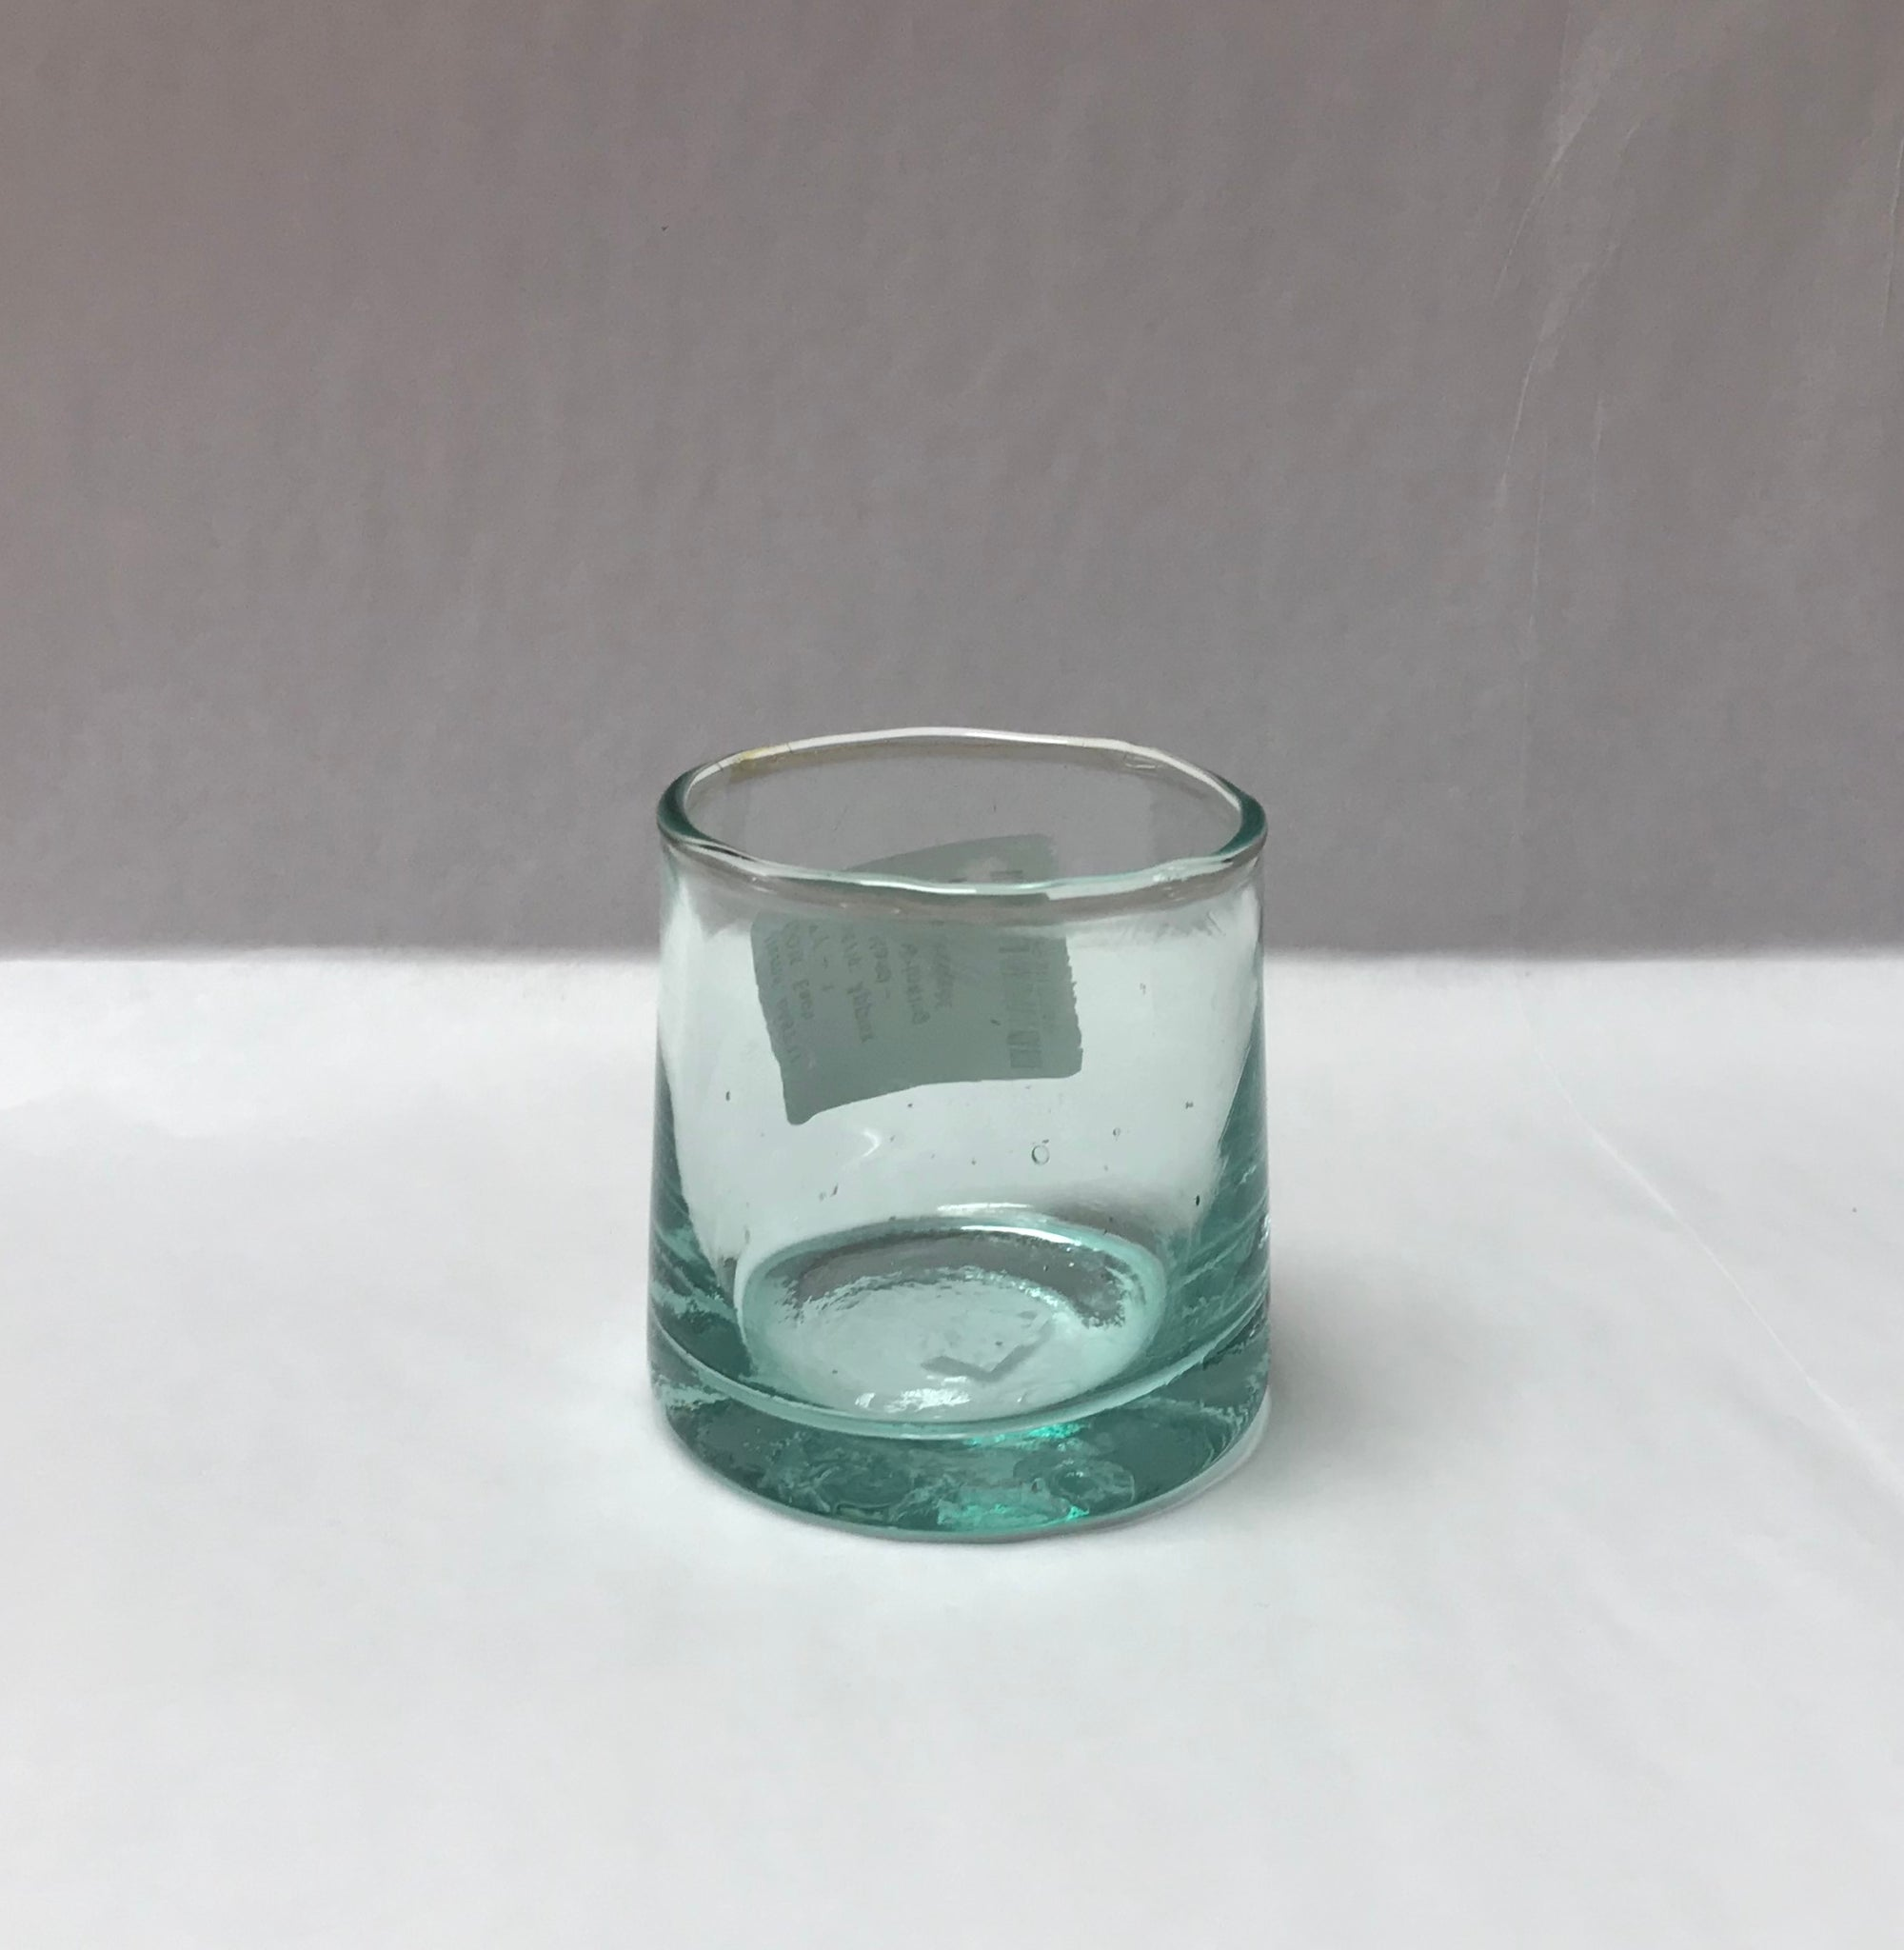 Small Green Glass (or Votive Holder)